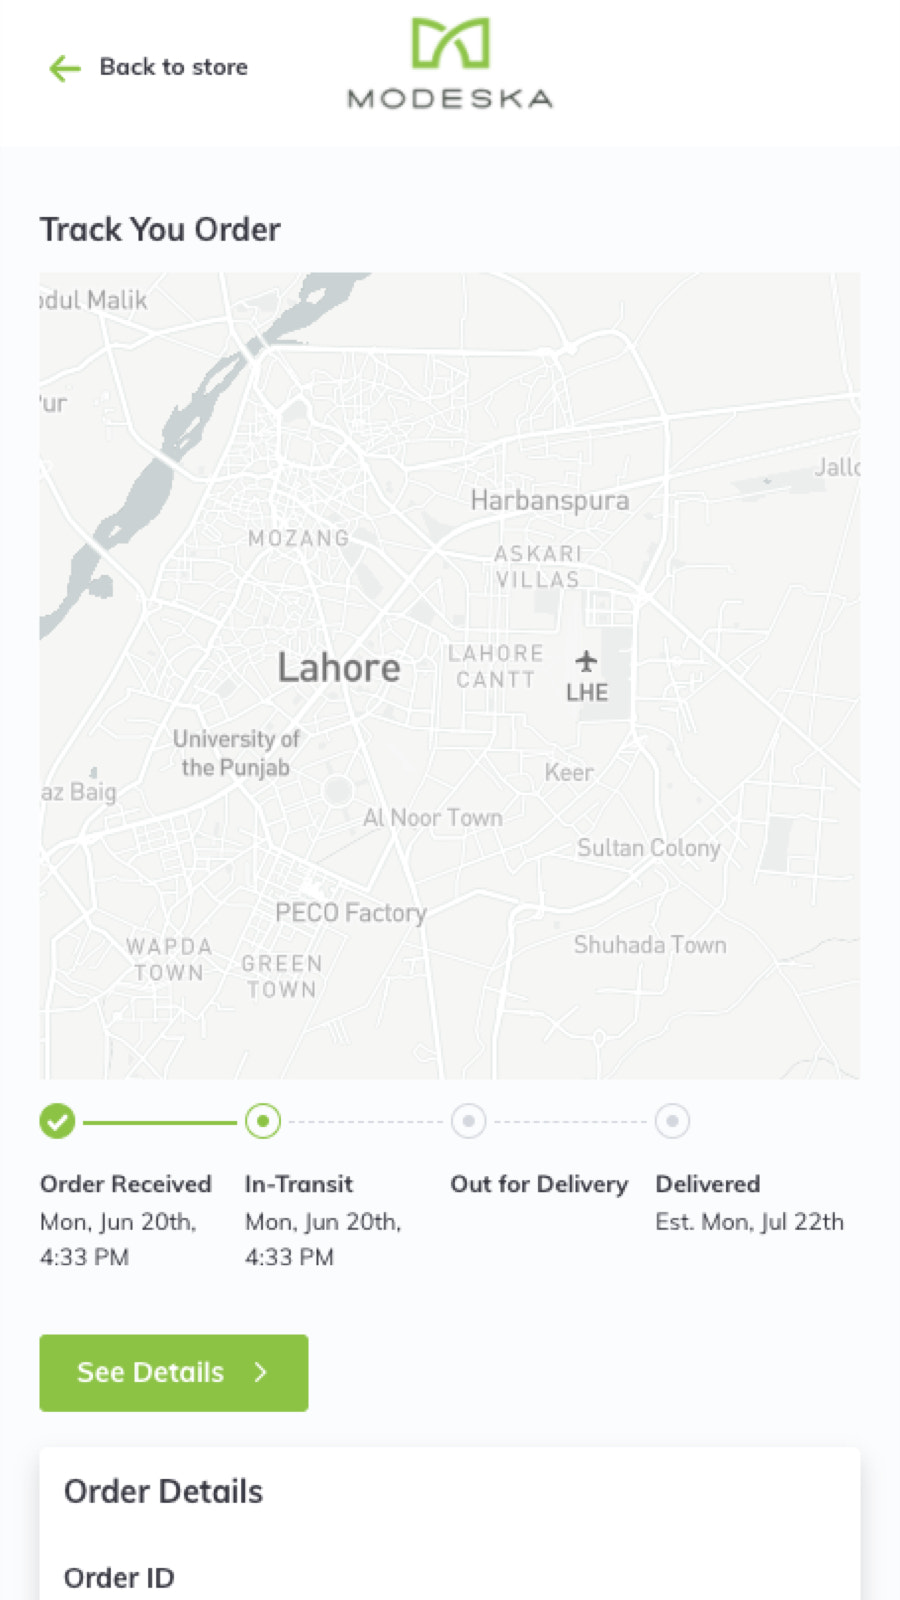 Branded customized order tracking on mobile